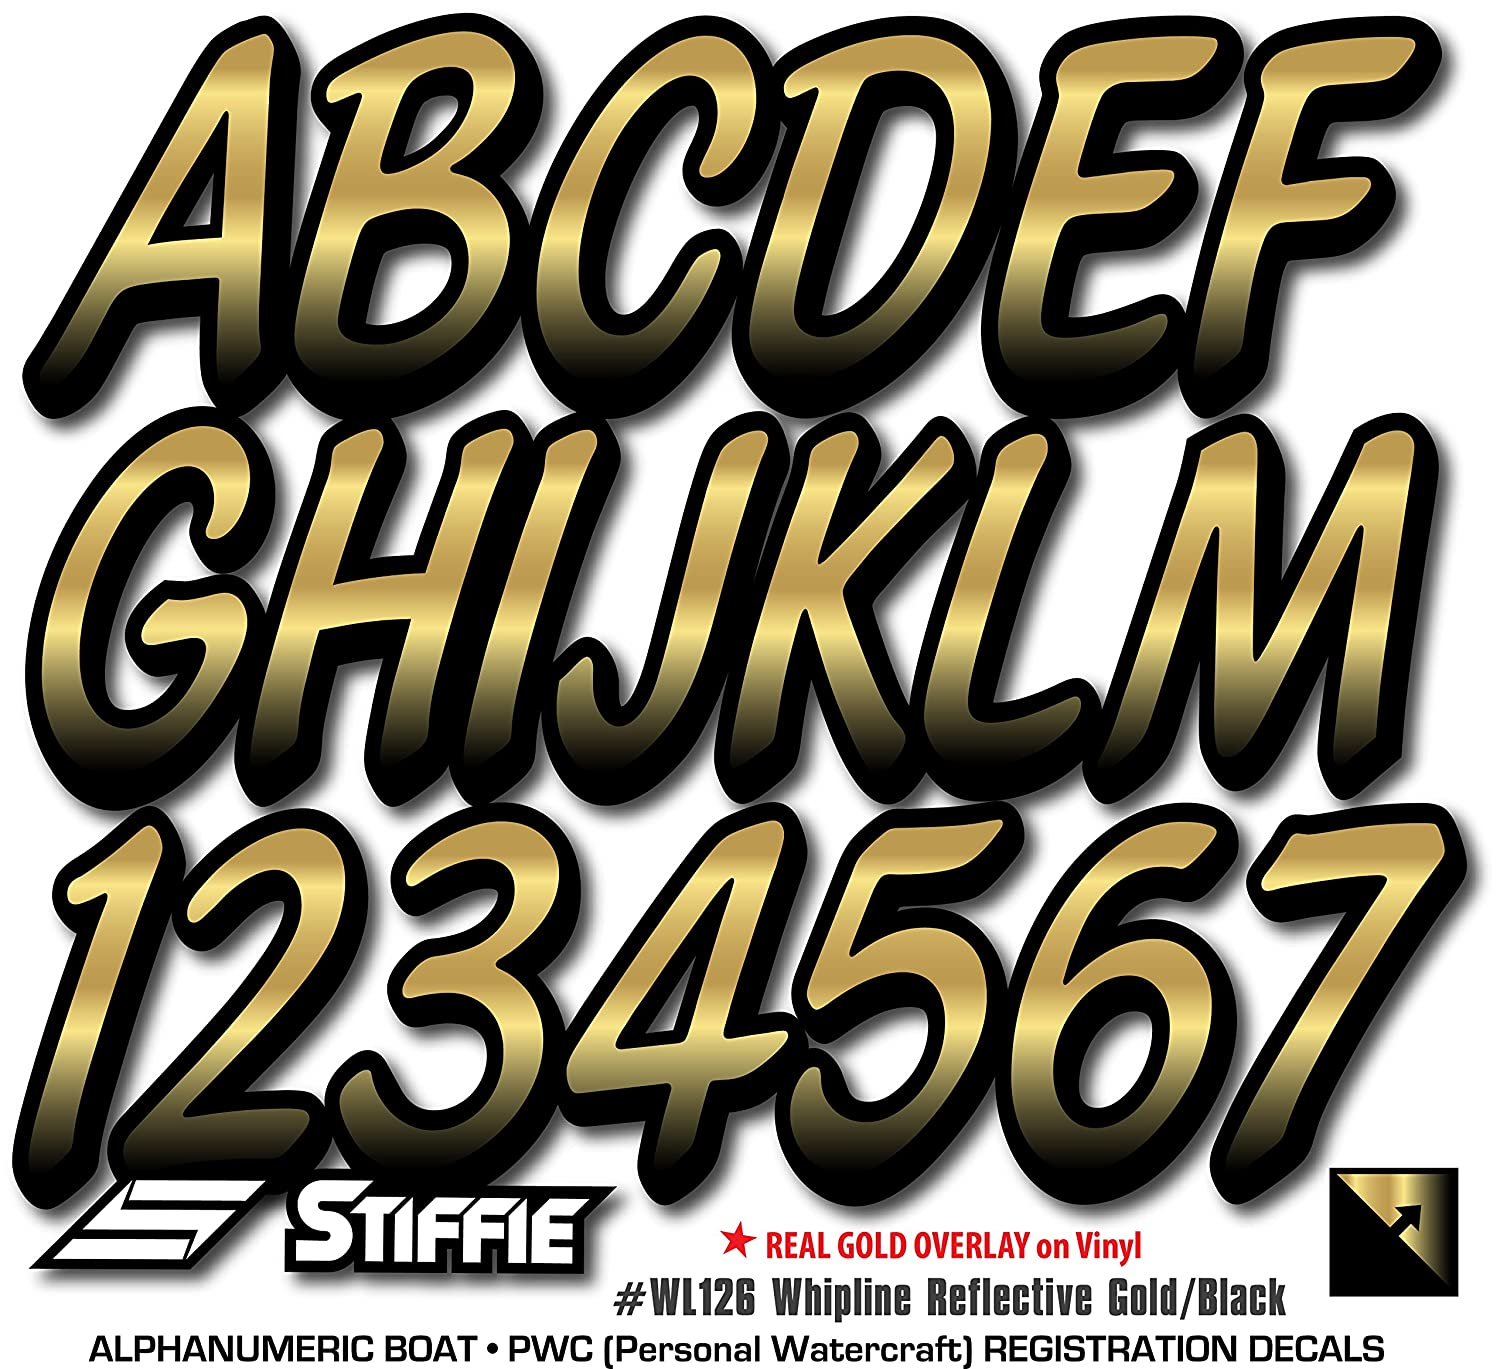 Stiffie Whipline Reflective Gold//Black 3 Alpha-Numeric Registration Identification Numbers Stickers Decals for Boats /& Personal Watercraft